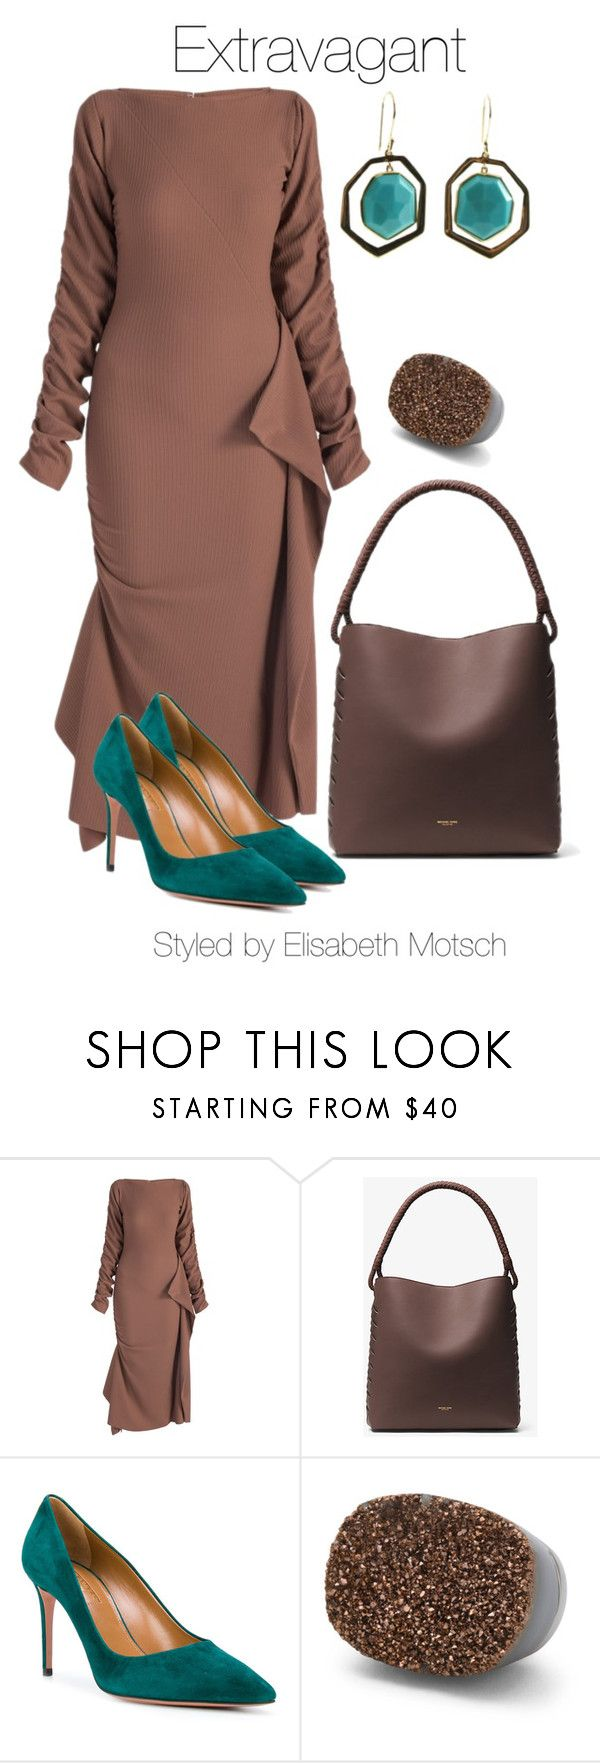 """Extravagant"" by motsch on Polyvore featuring Mode, Michael Kors, Aquazzura und Ippolita"